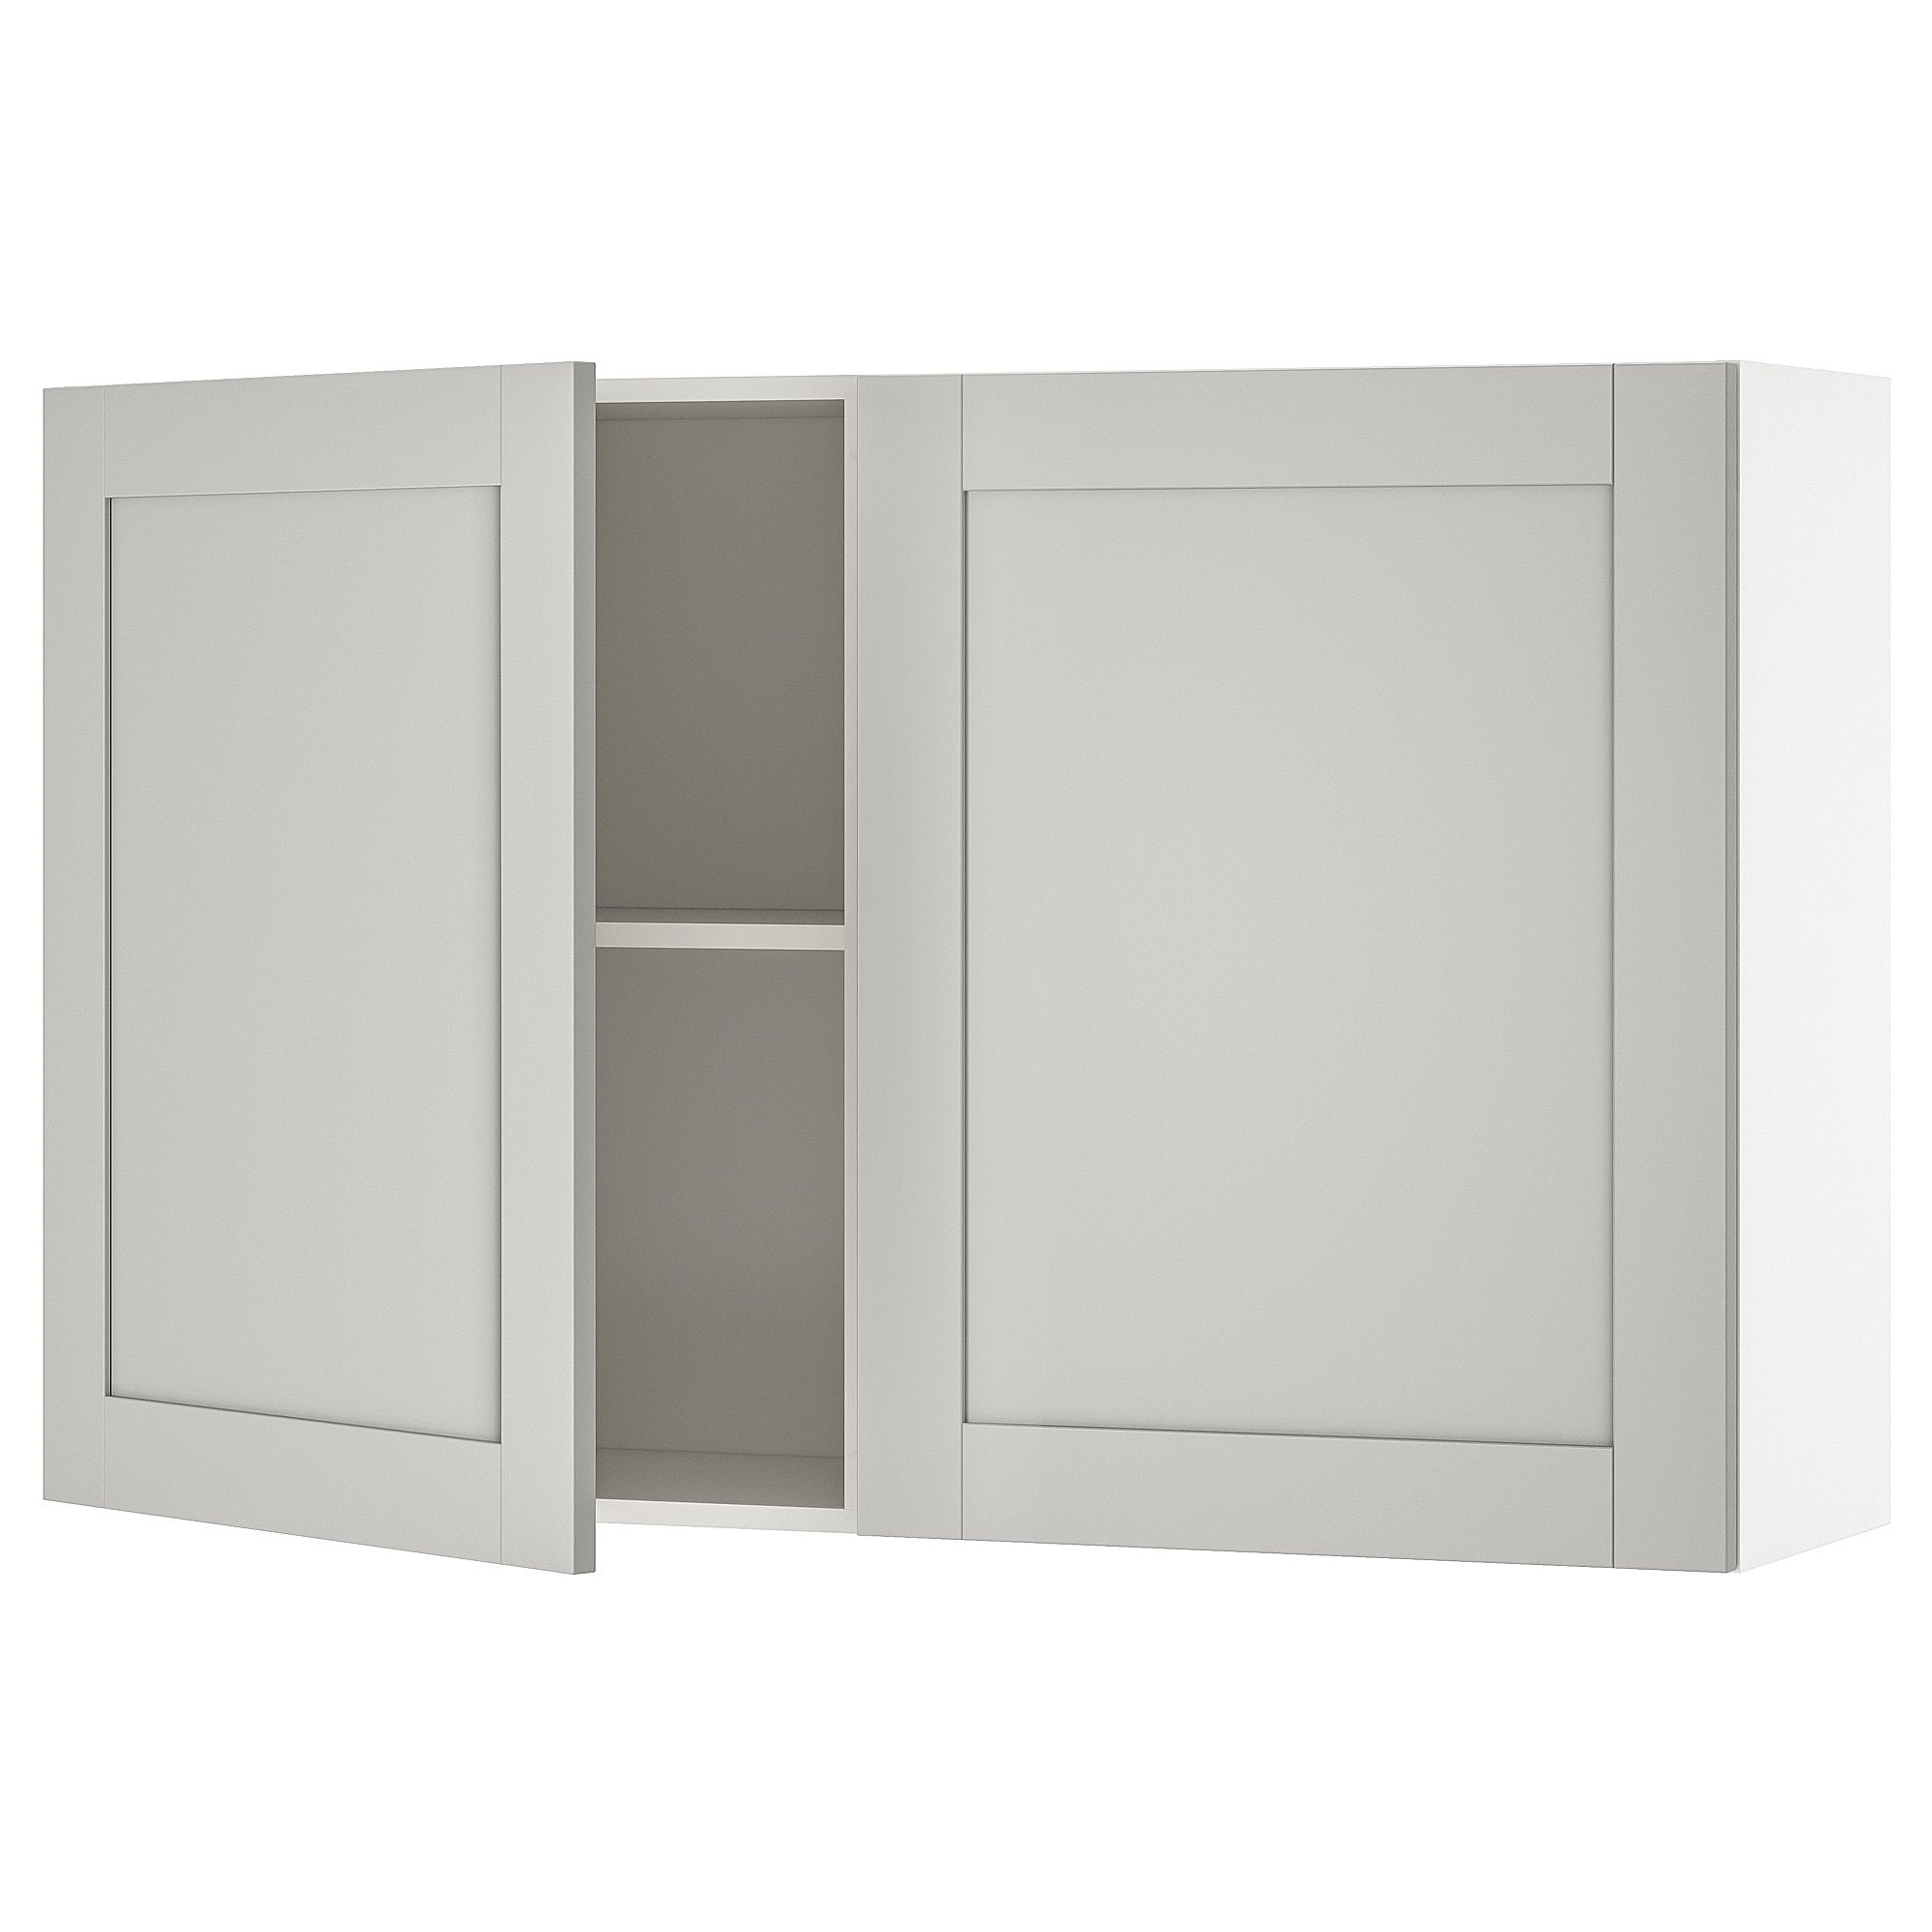 Ikea Korpusse Küche Knoxhult In 2019 Products Locker Storage Ikea Und Lockers